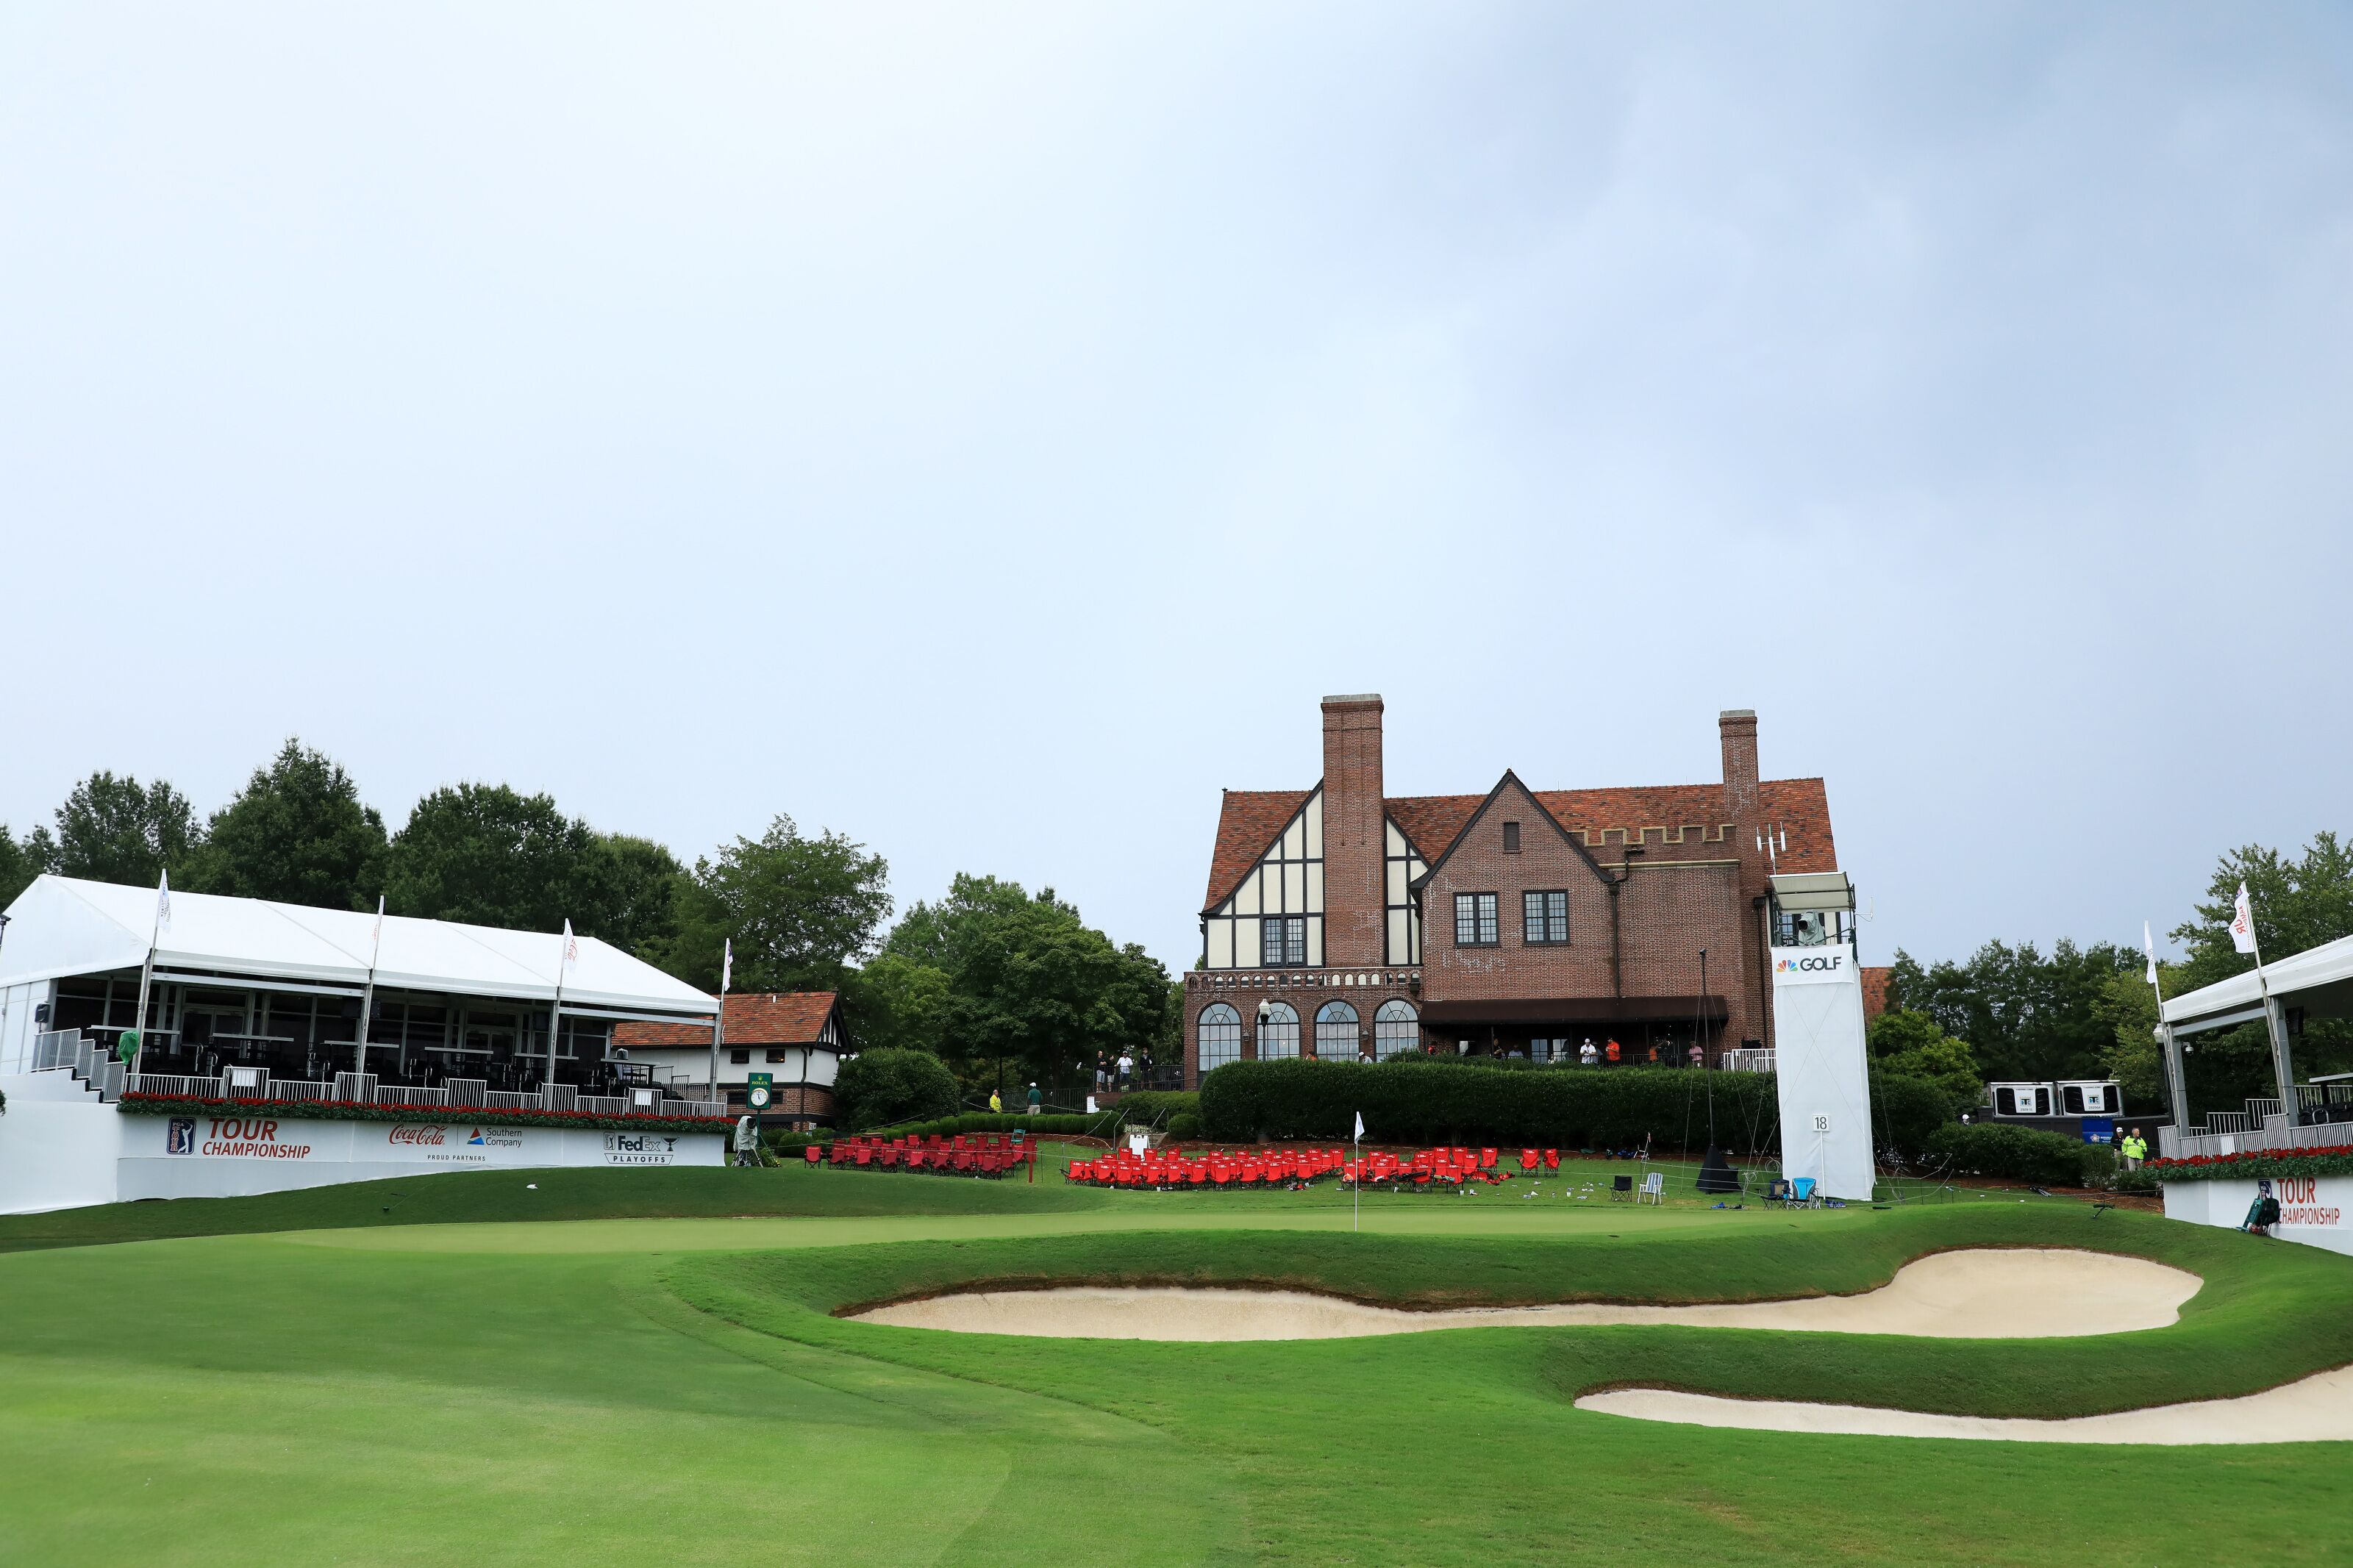 TOUR Championship 2019: Could weather issues have been prevented?